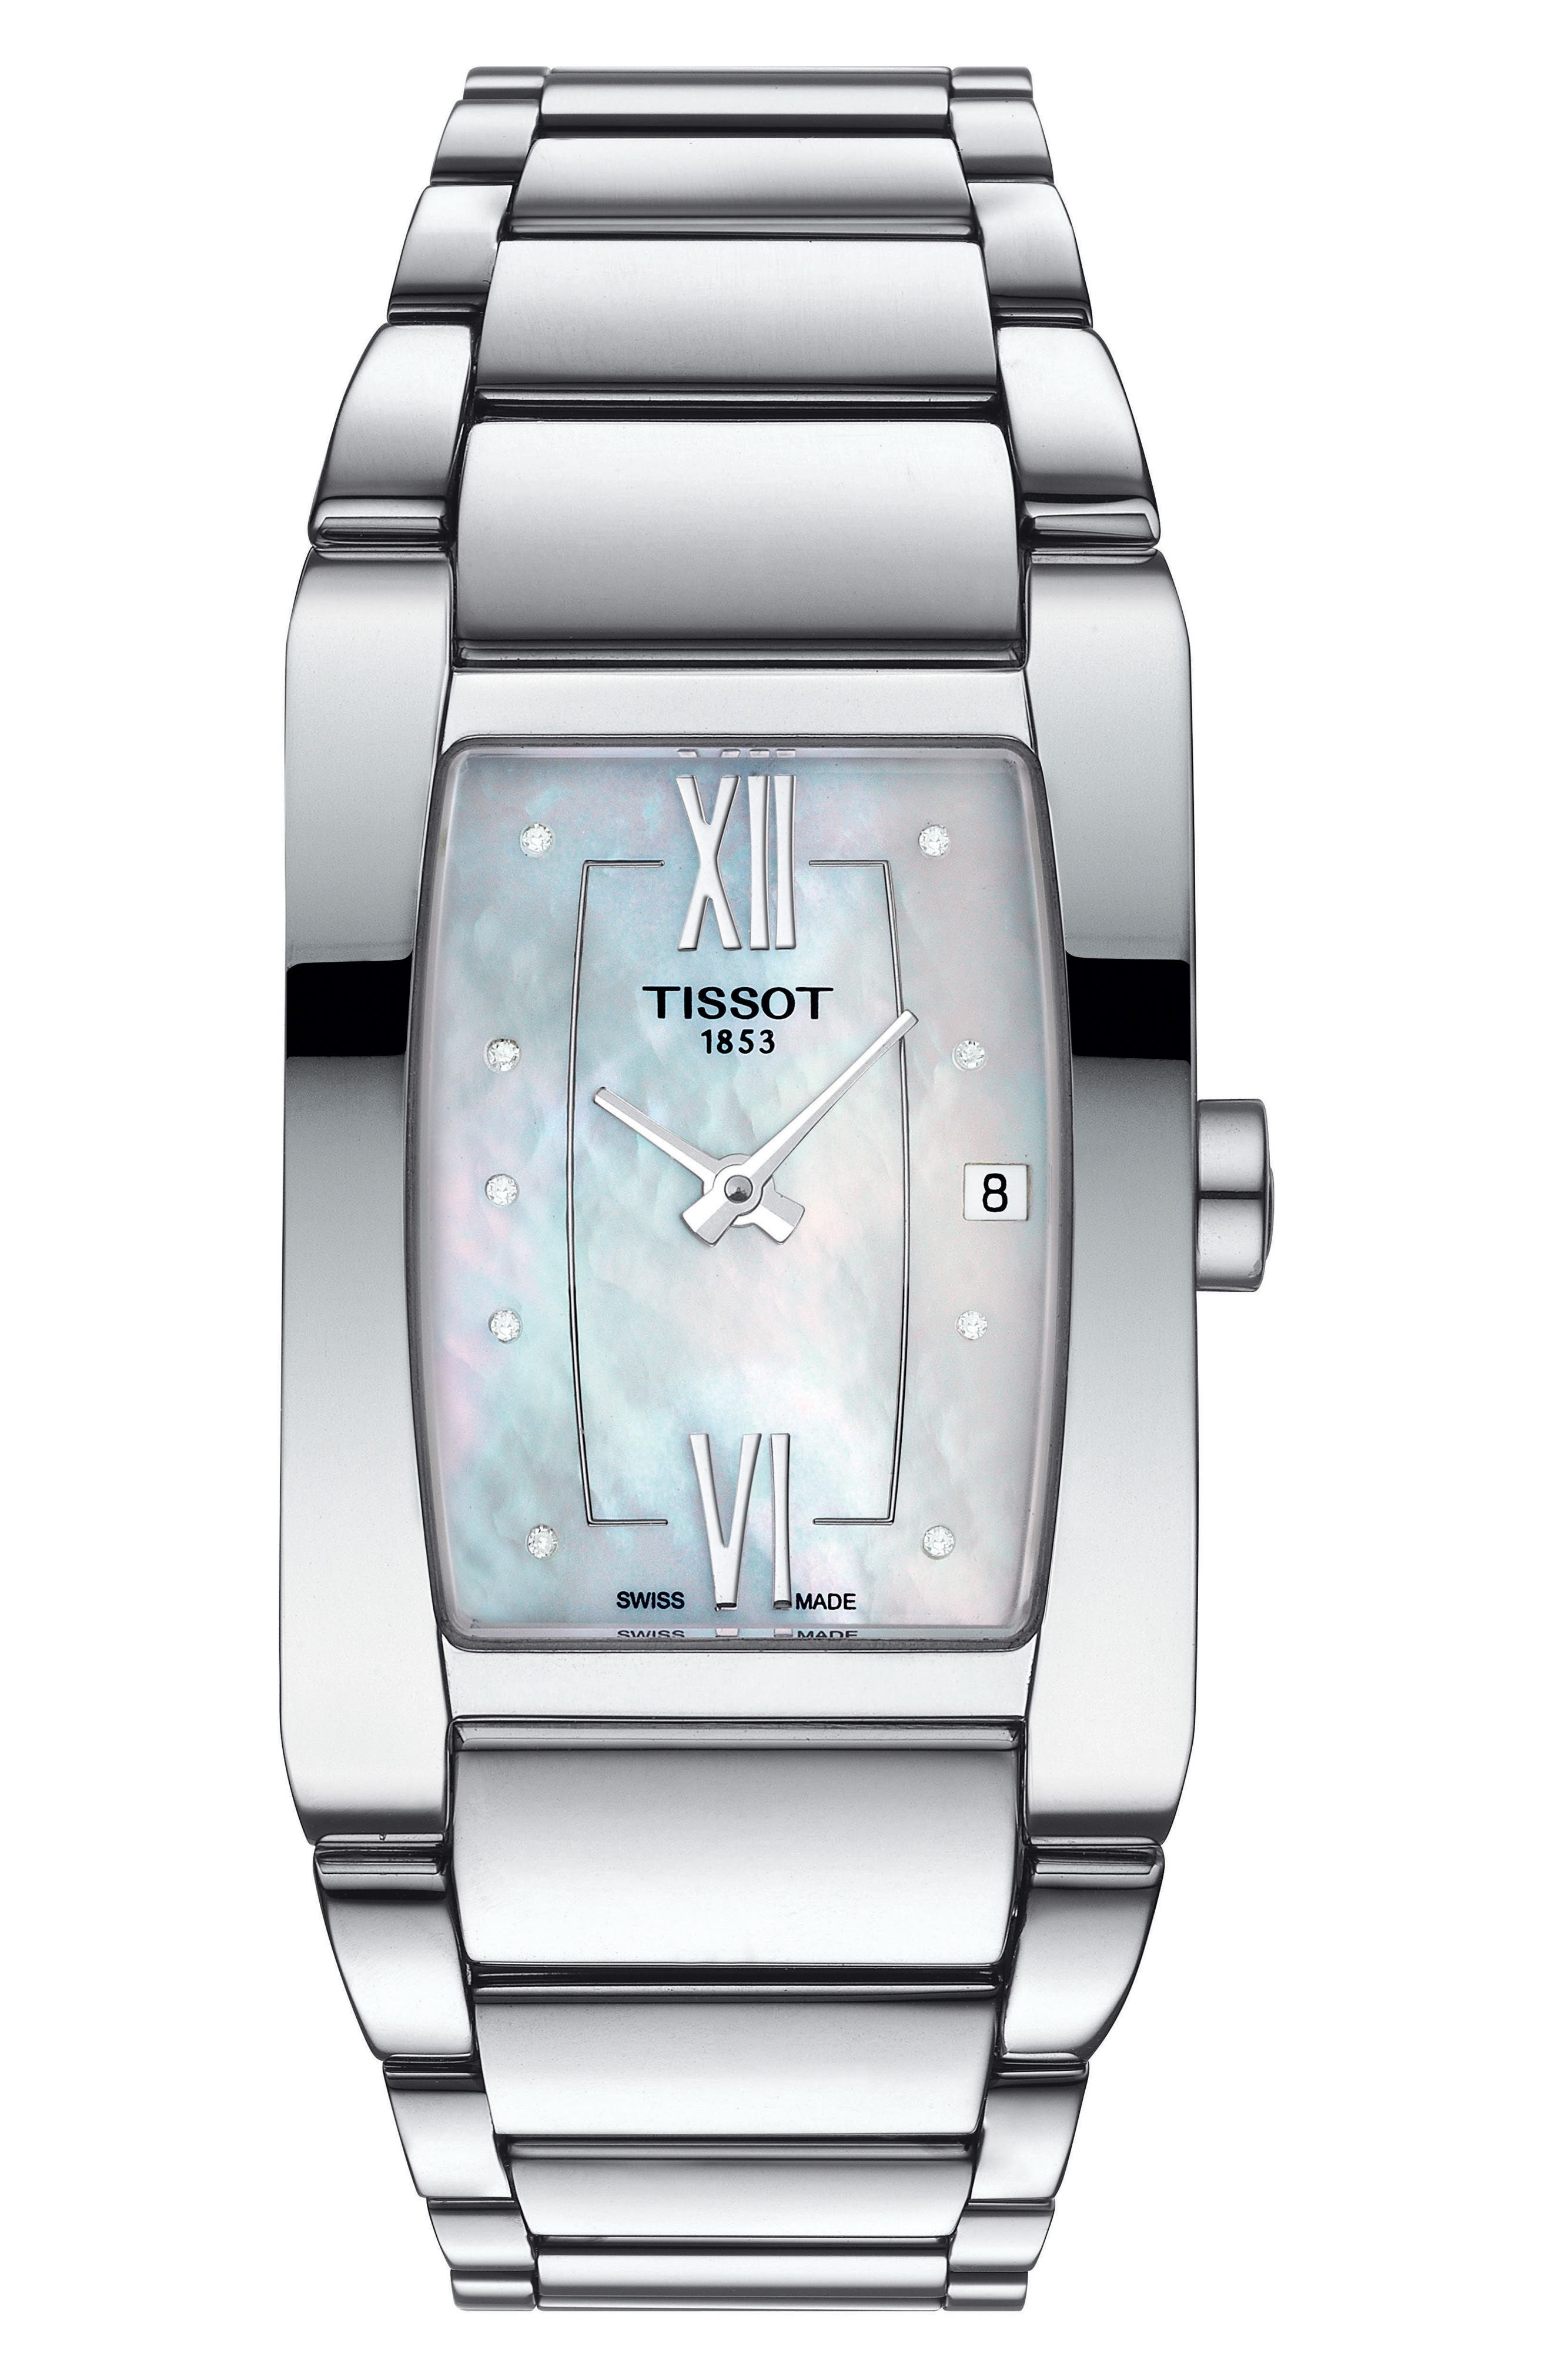 TISSOT,                             Generosi-T Bracelet Watch, 27mm,                             Main thumbnail 1, color,                             SILVER/ MOTHER OF PEARL